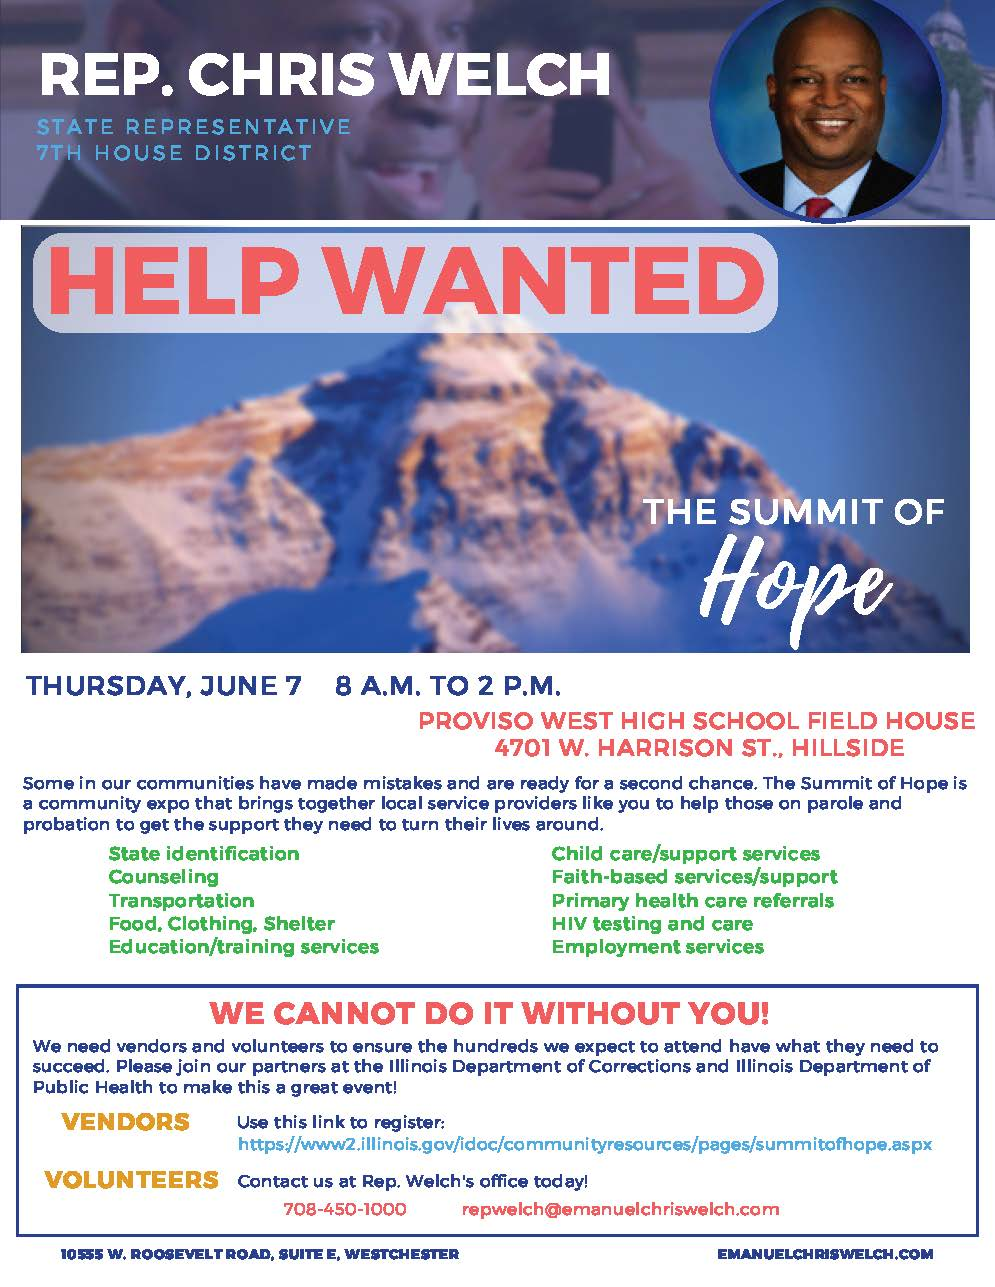 Rep. Chris Welch Summit of Hope vendor-volunteer flyer.jpg